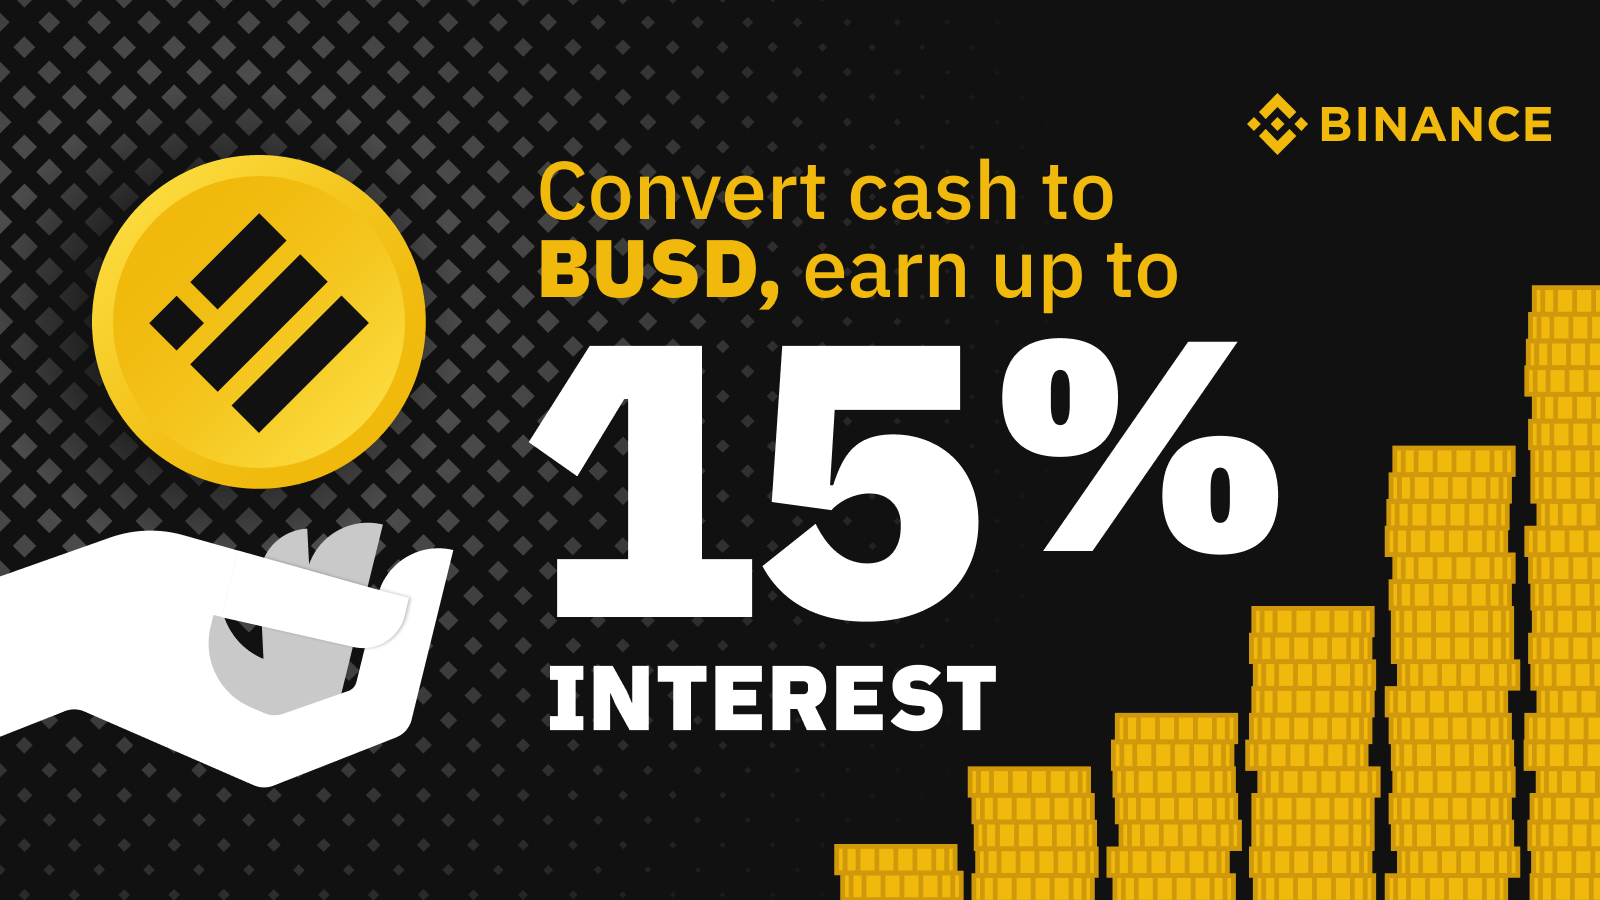 Convert Cash to BUSD to Earn up to 15% InterestCryptocurrency Trading Signals, Strategies & Templates | DexStrats